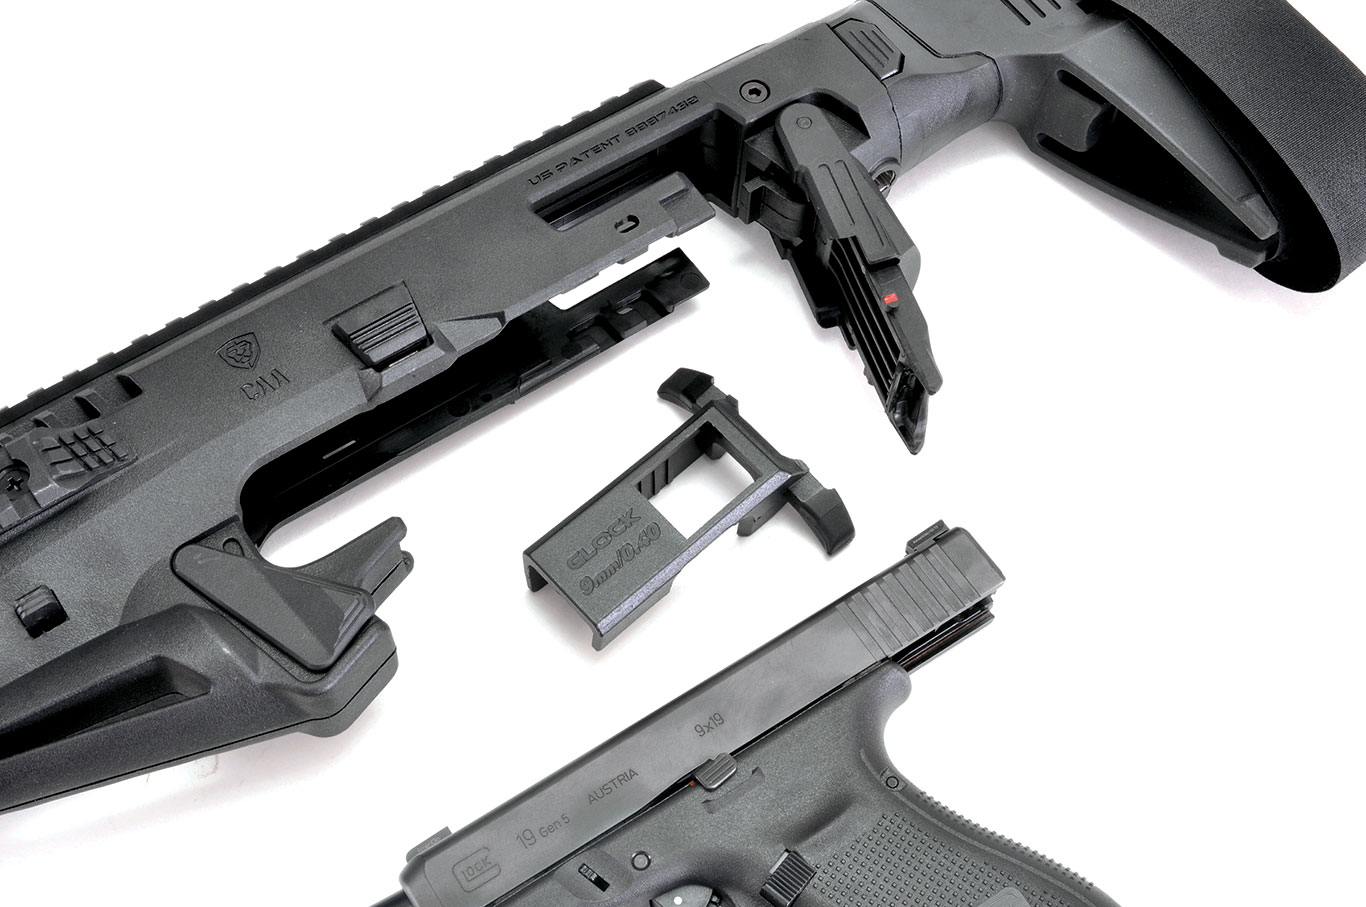 The T-shaped charging handle fits over the  top of the Glock slide, and it is inserted in  the RONI's receiver  once you lower the  gate. Tarr learned the Micro RONI works with Gen 3 and 4 Glocks, but not the new Gen 5.